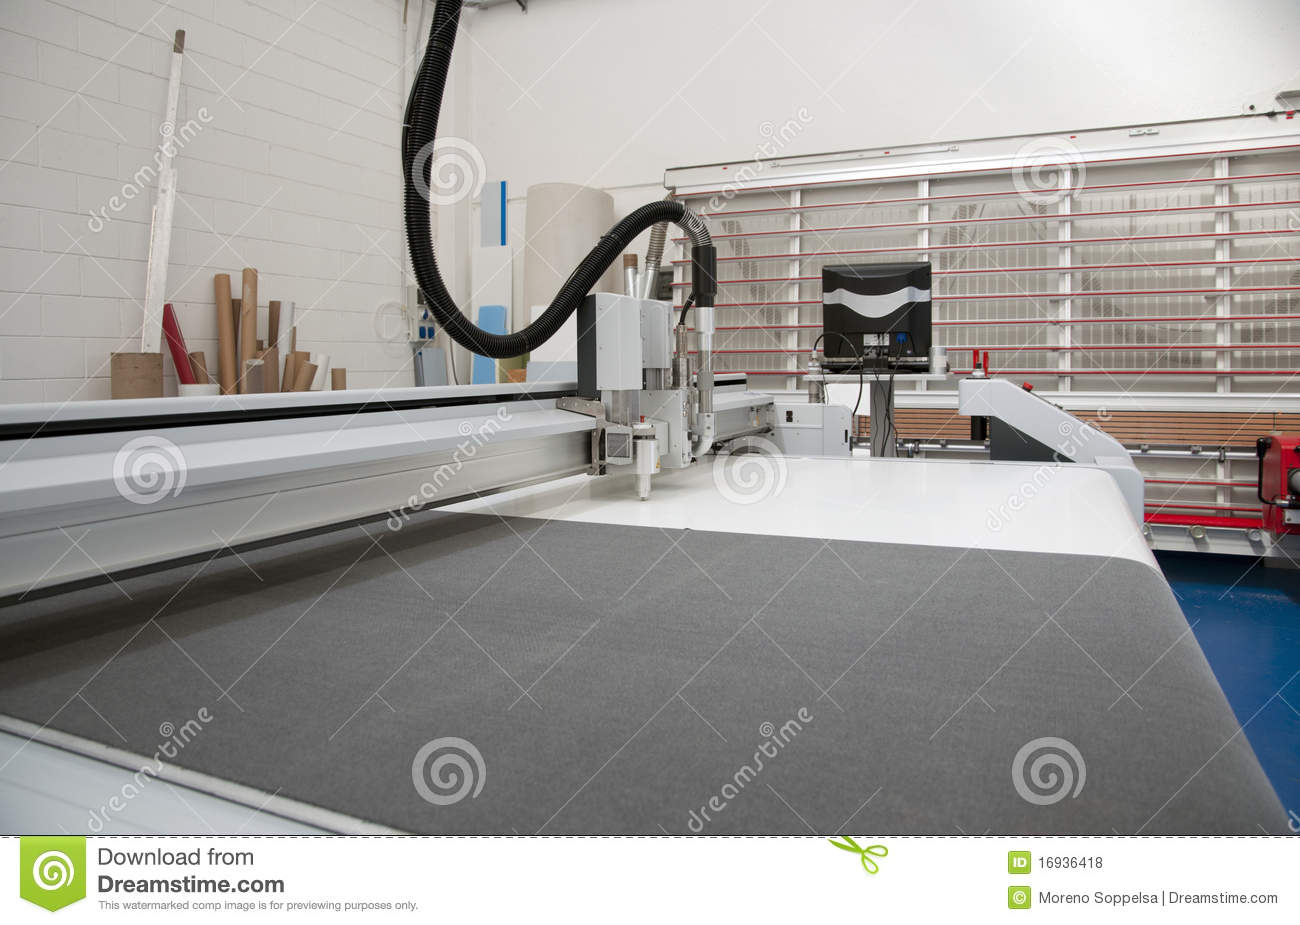 What Kind of Business Can I Have With a Vinyl Cutting Machine?